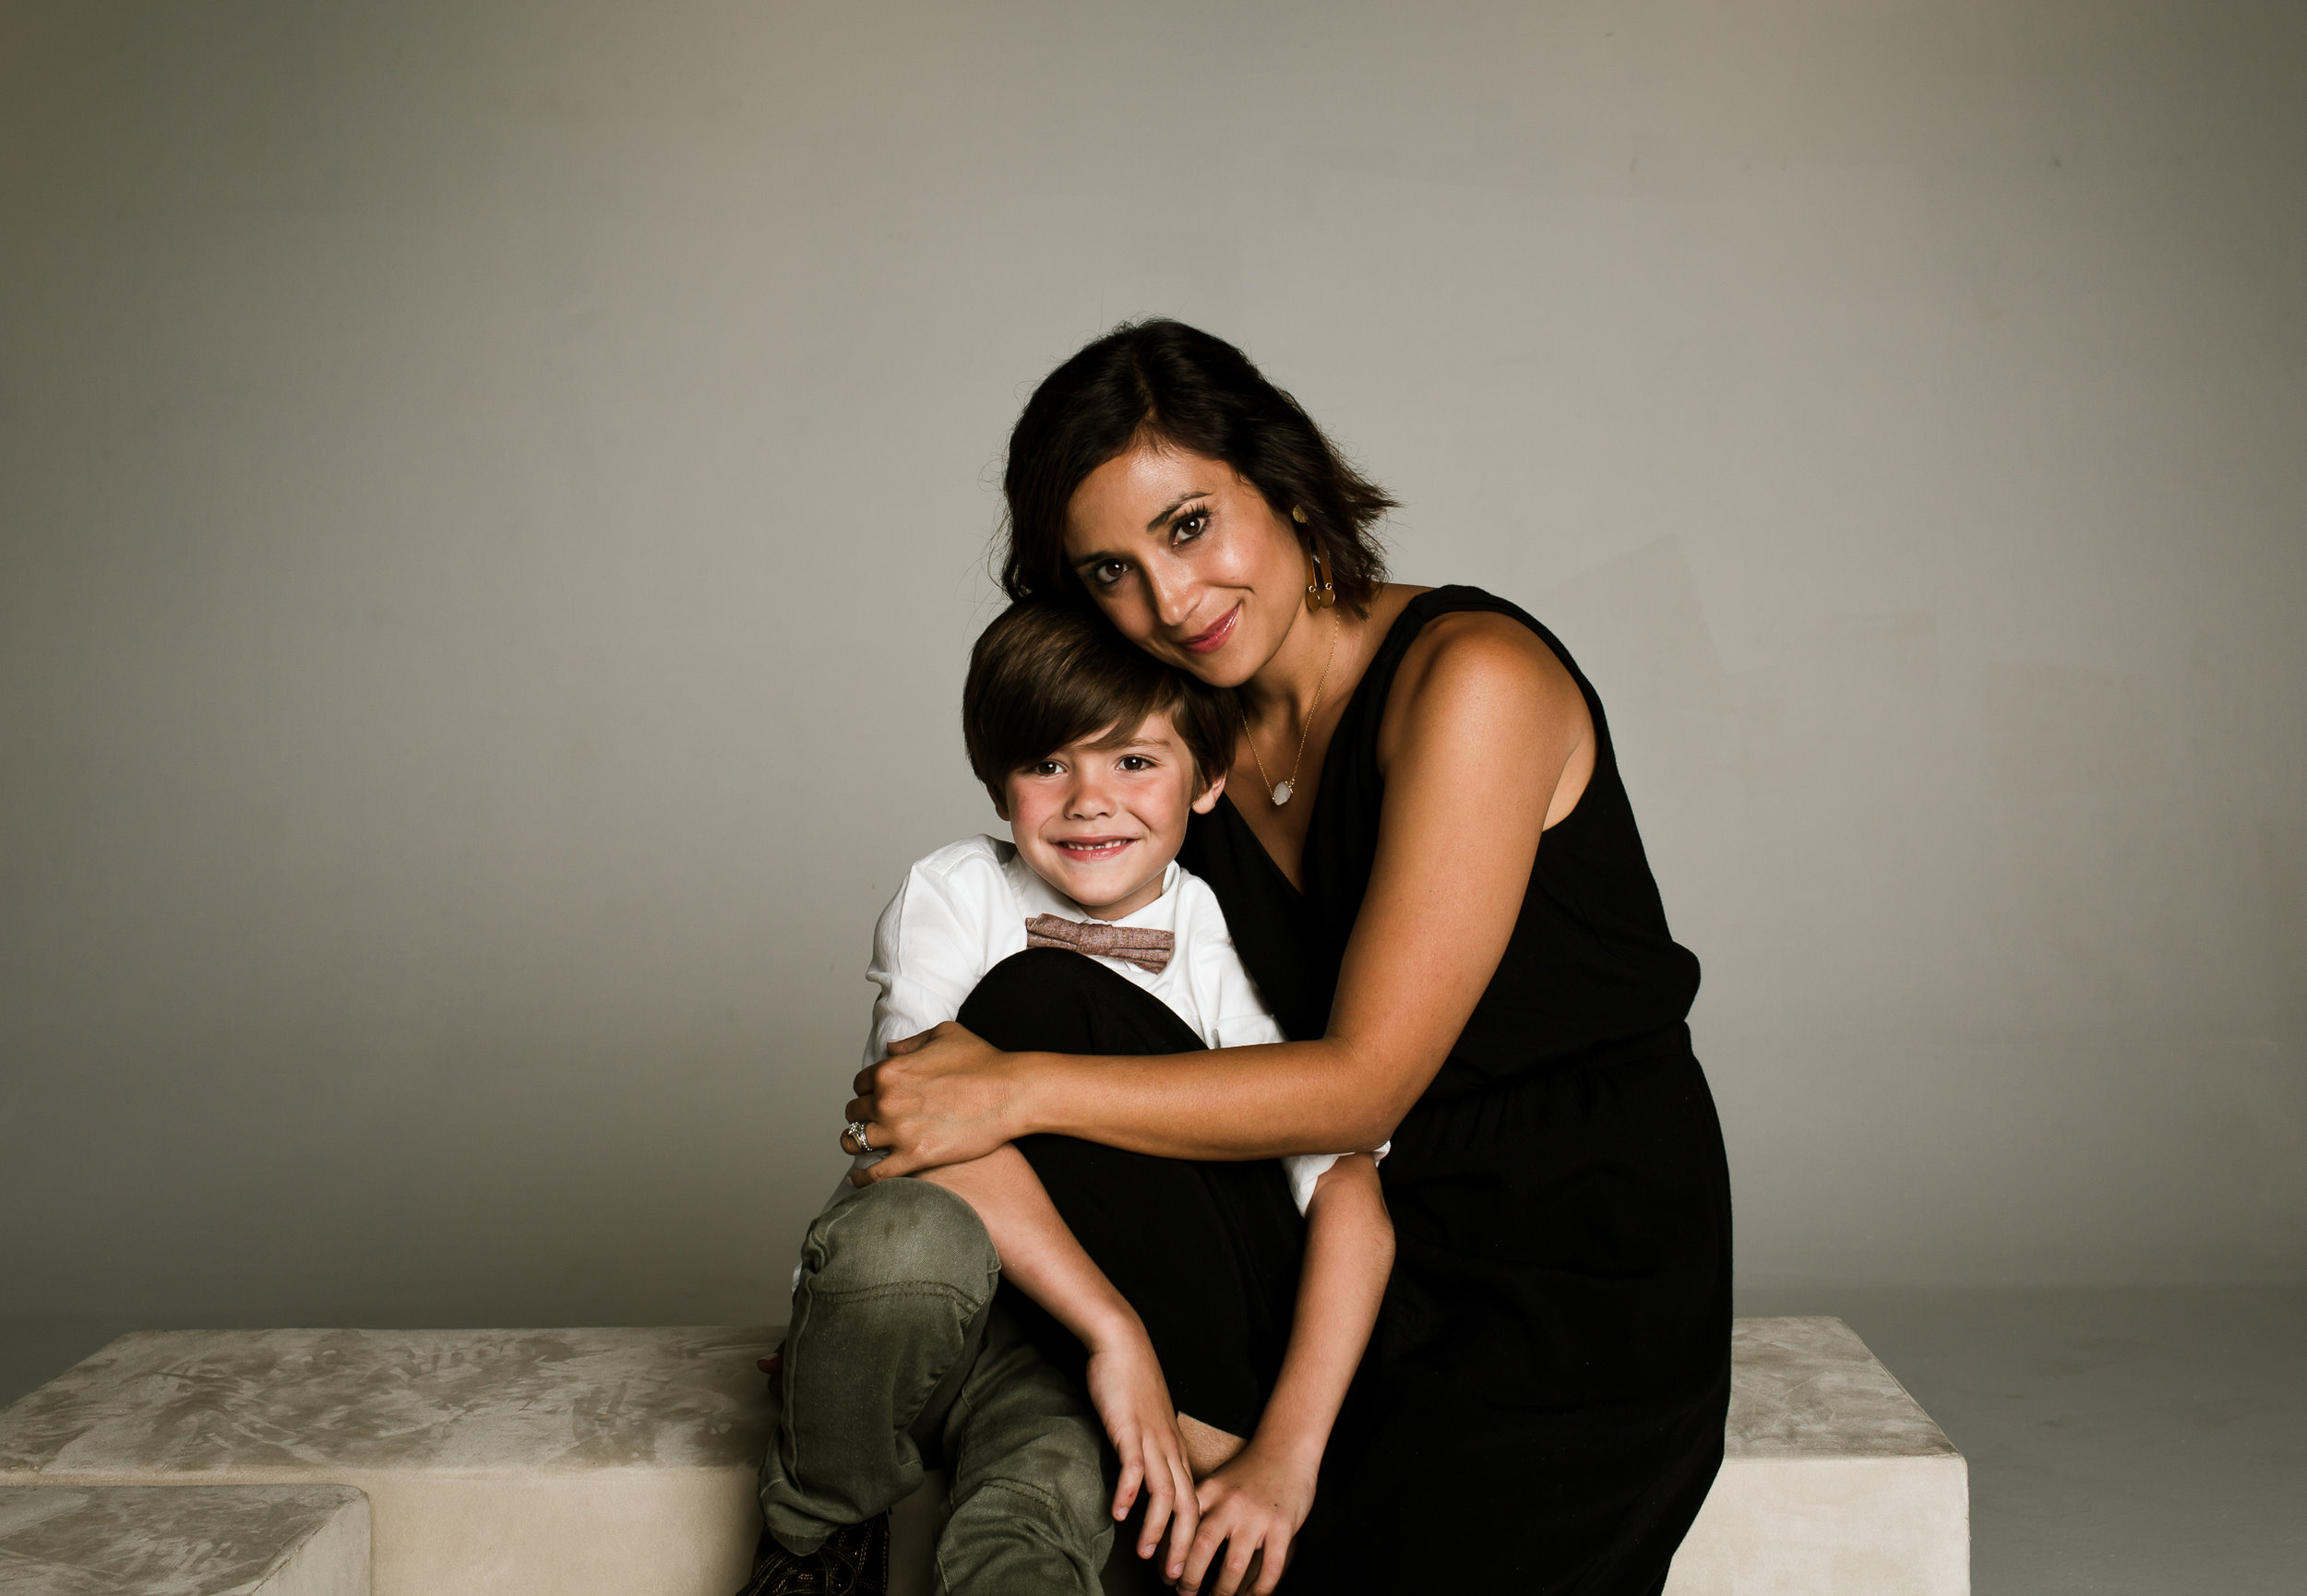 Gianna Keiko Atlanta Family Studio Portrait Photographer-9.jpg